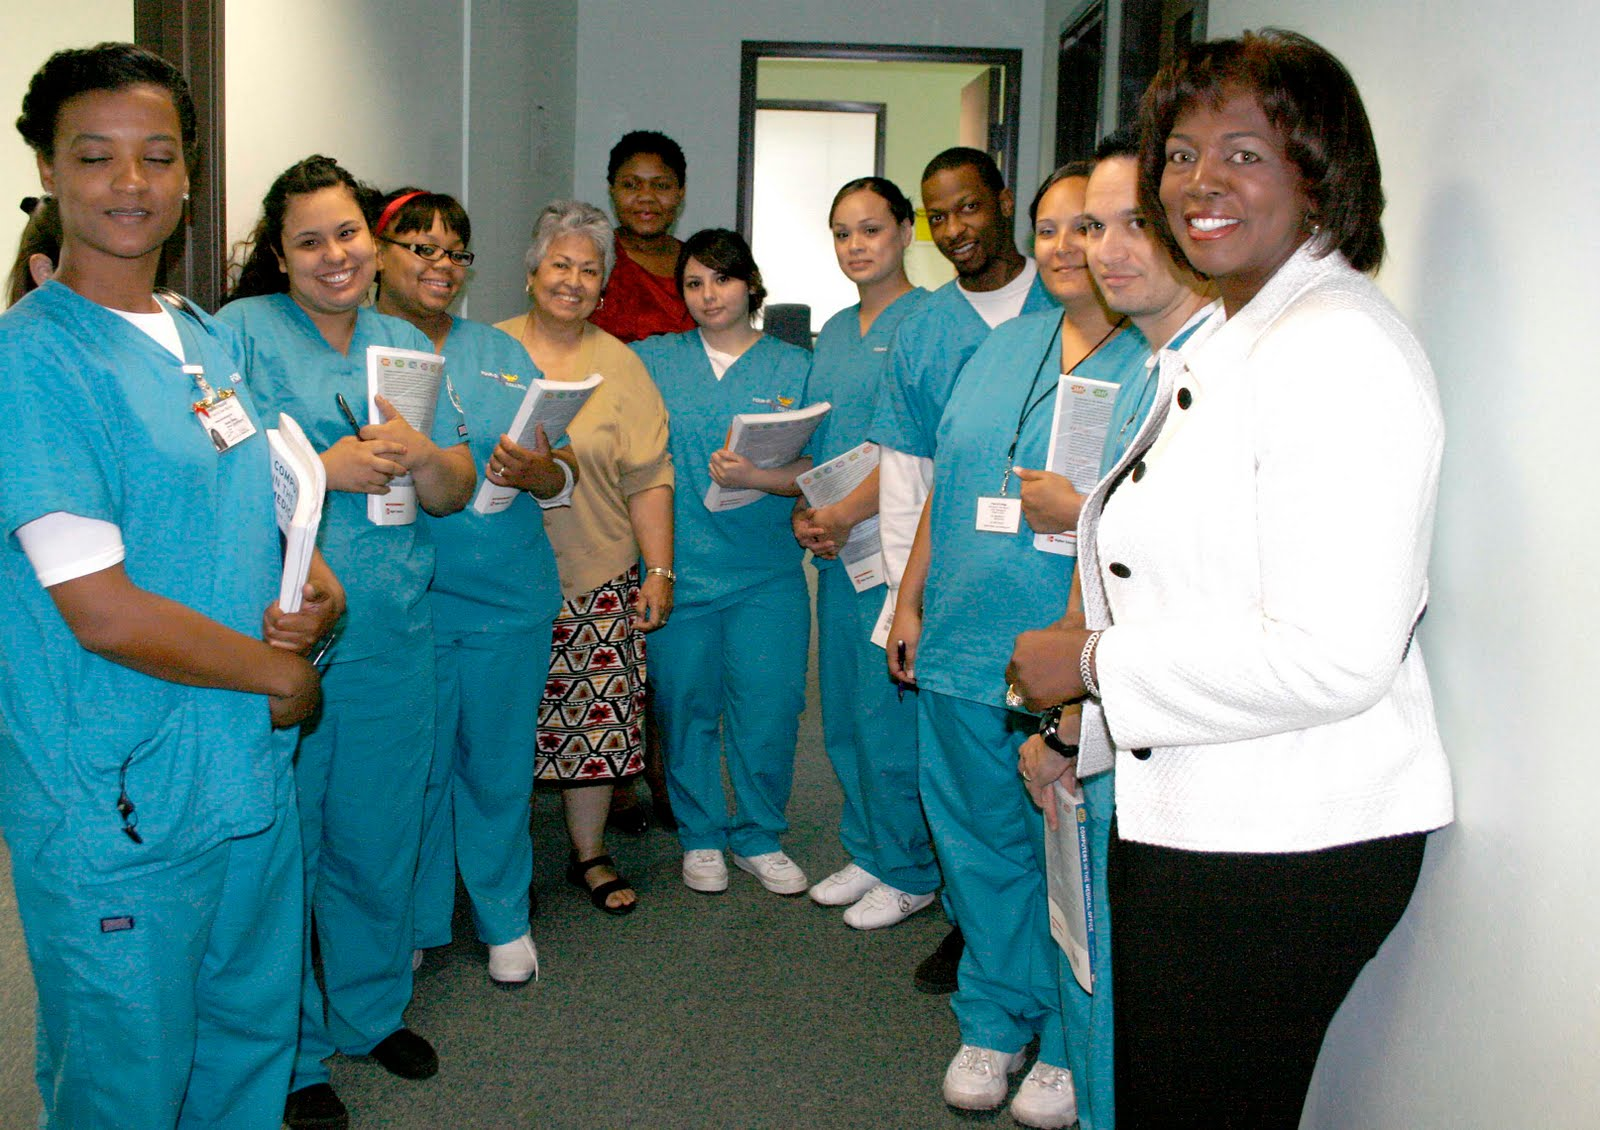 Medical Assistant subjects studied in college